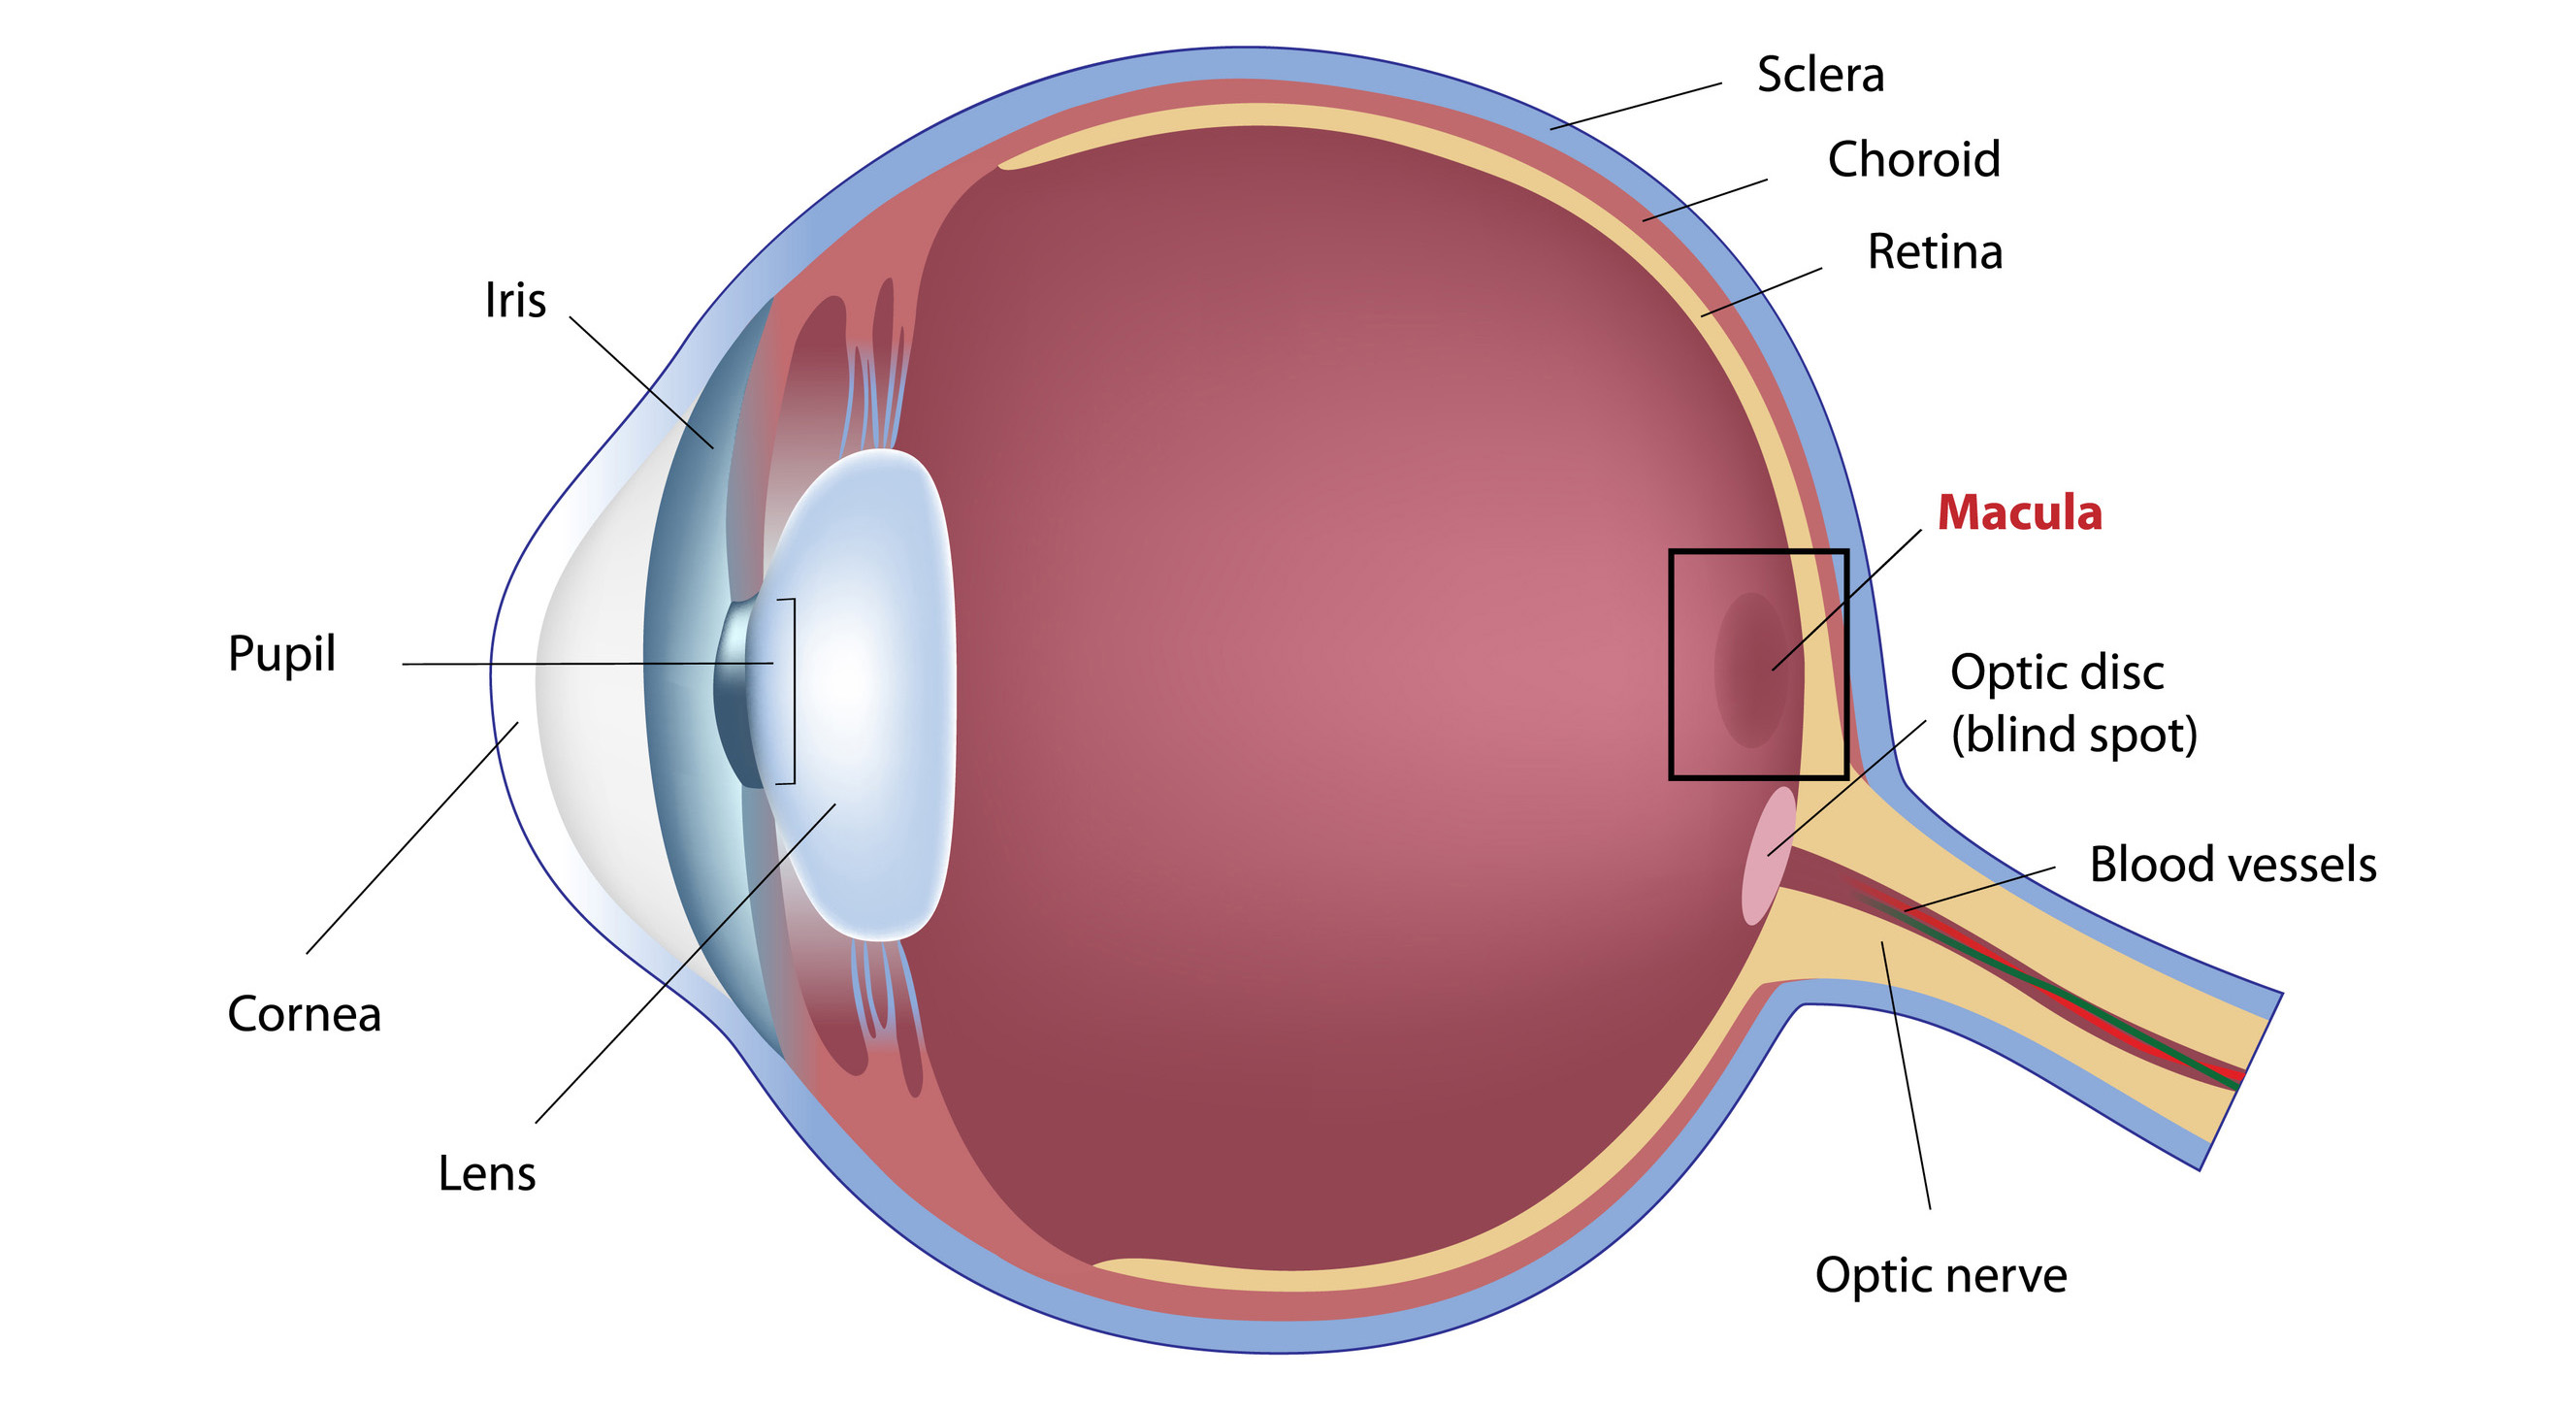 Image of the macula of the eye